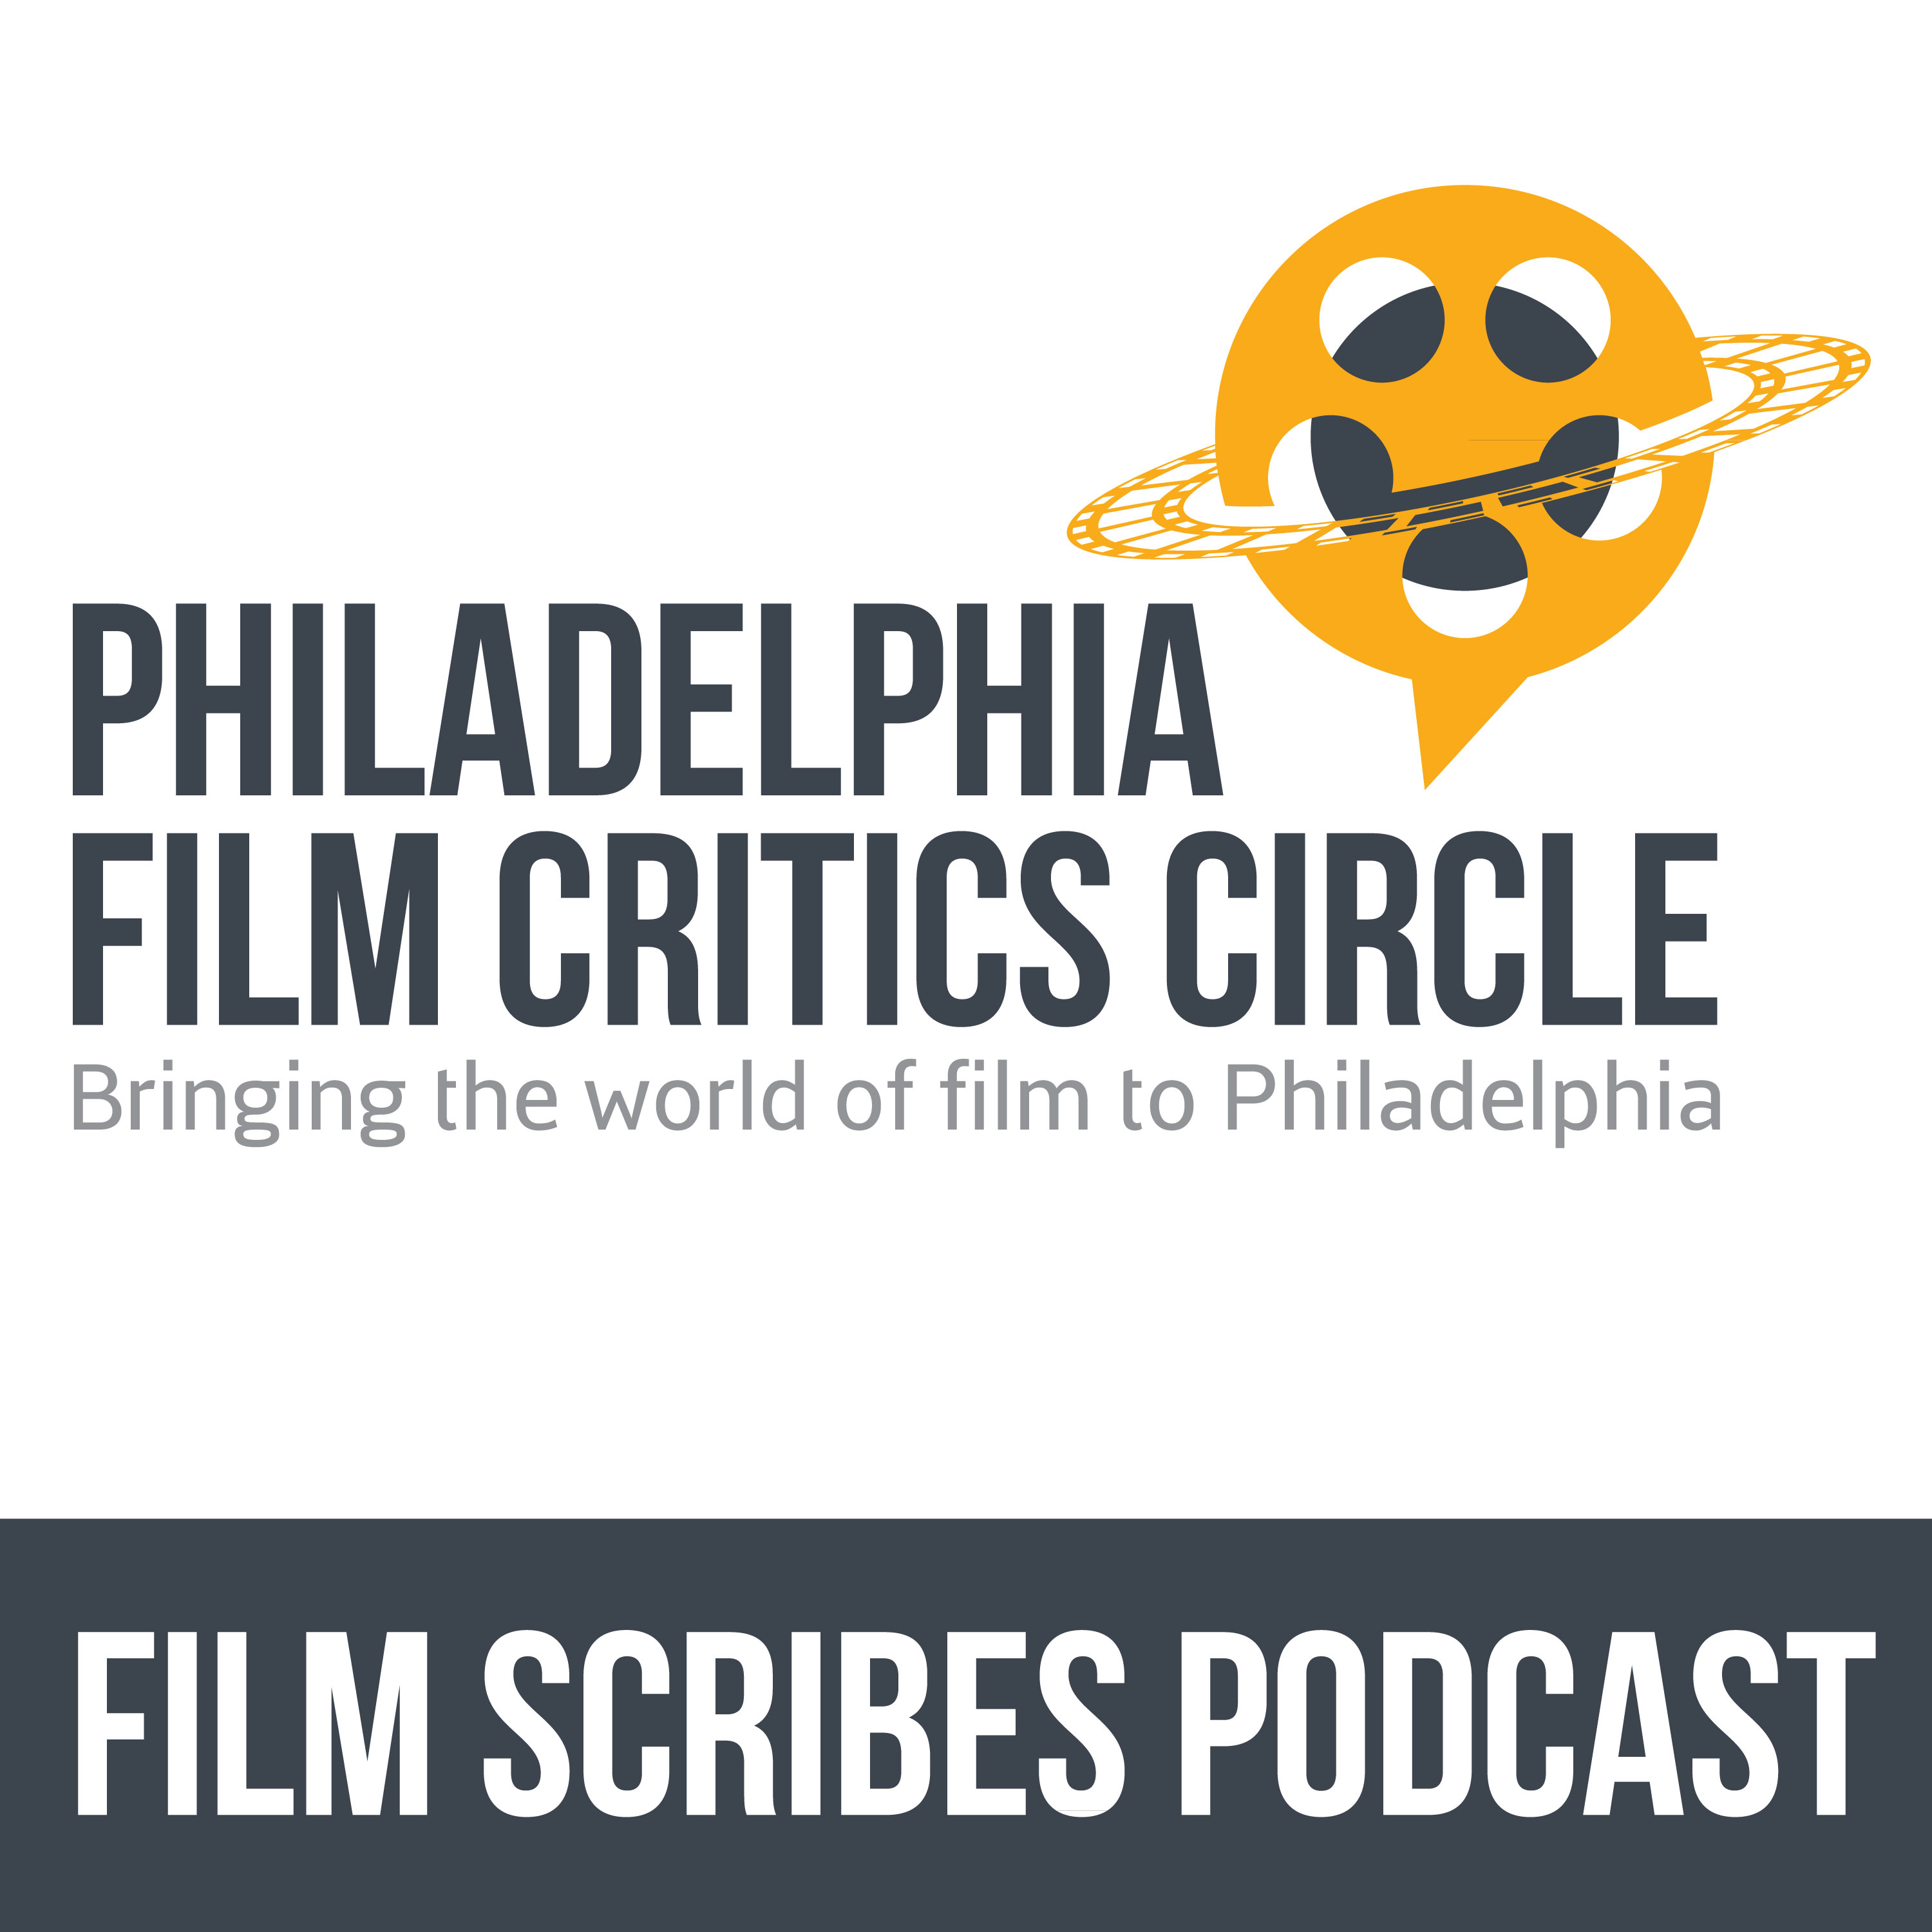 The Film Scribes Podcast show art